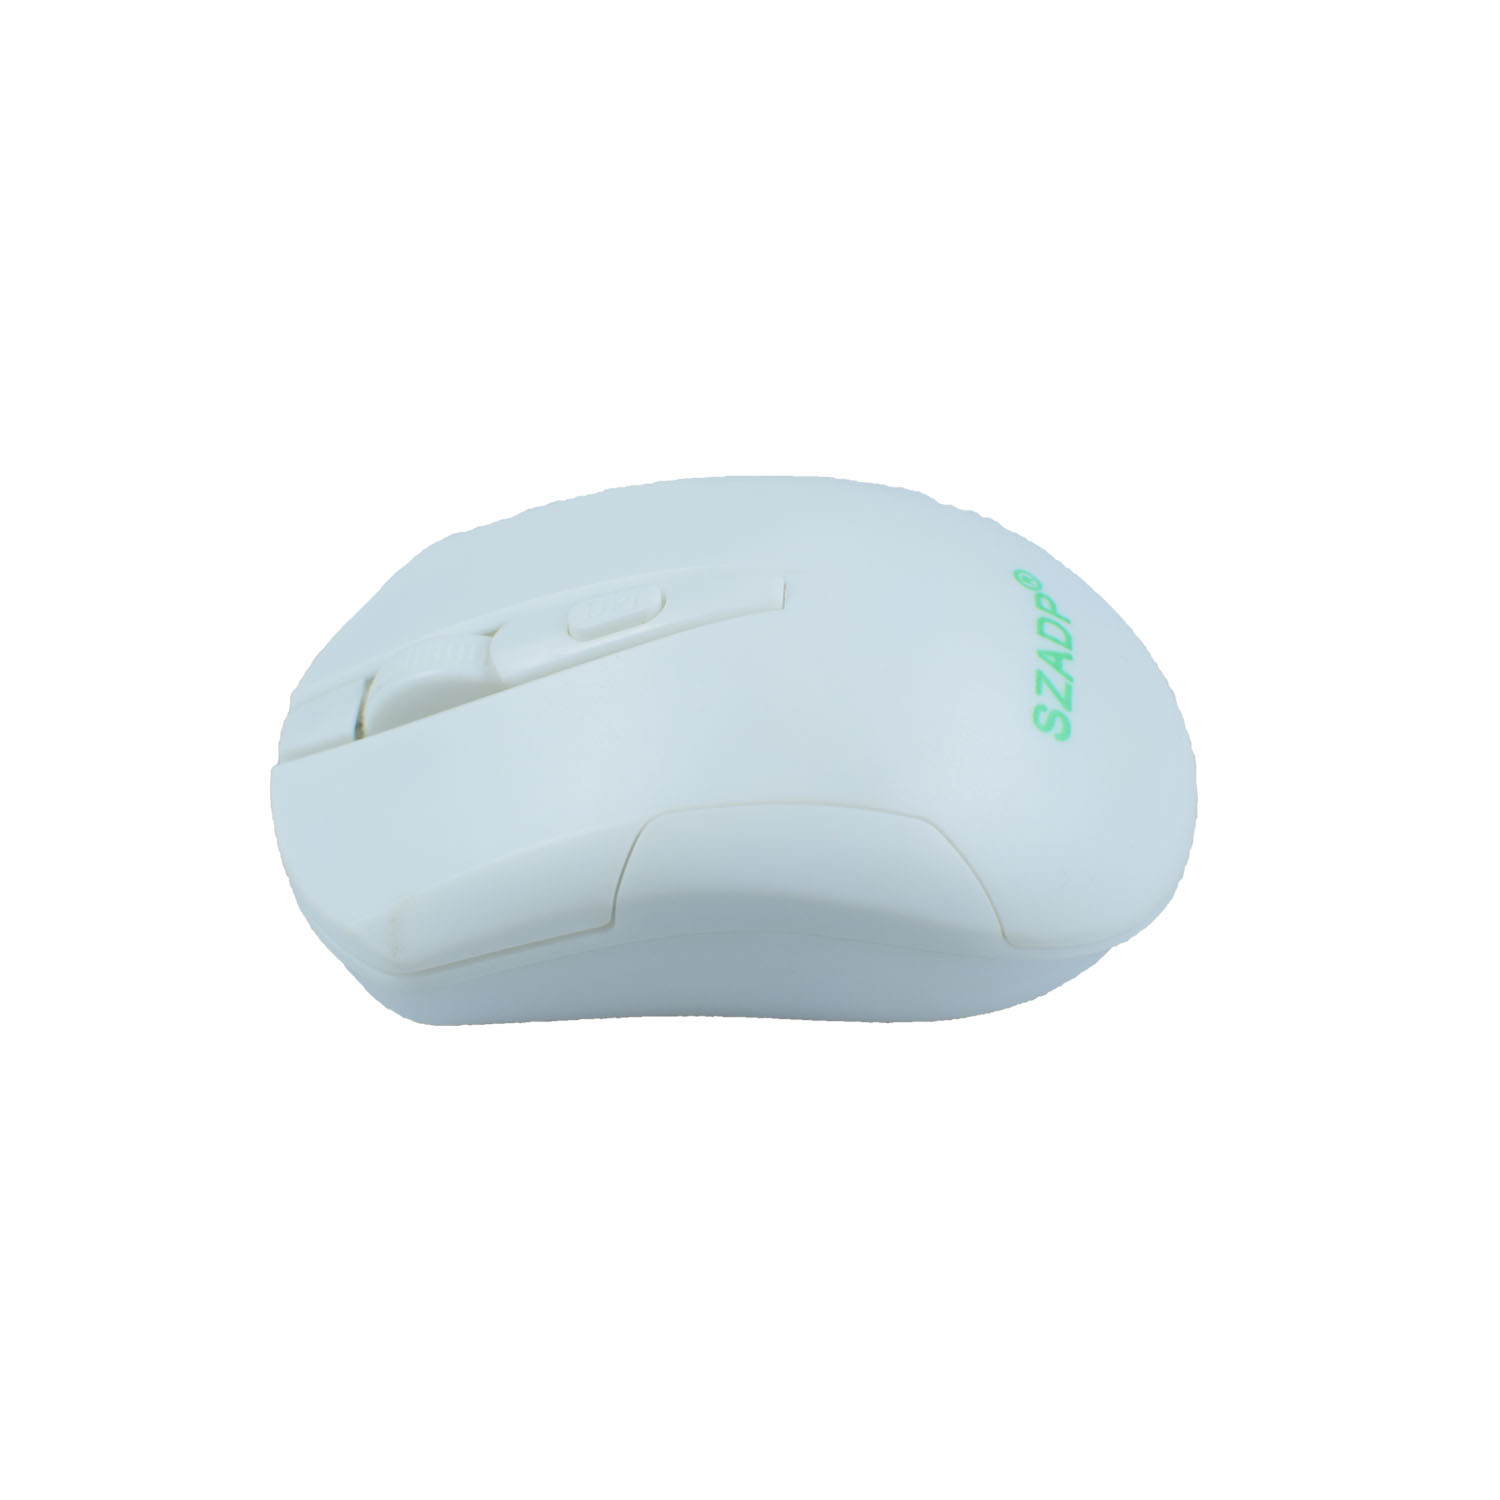 Slim USB Rechargeable Wireless Mouse